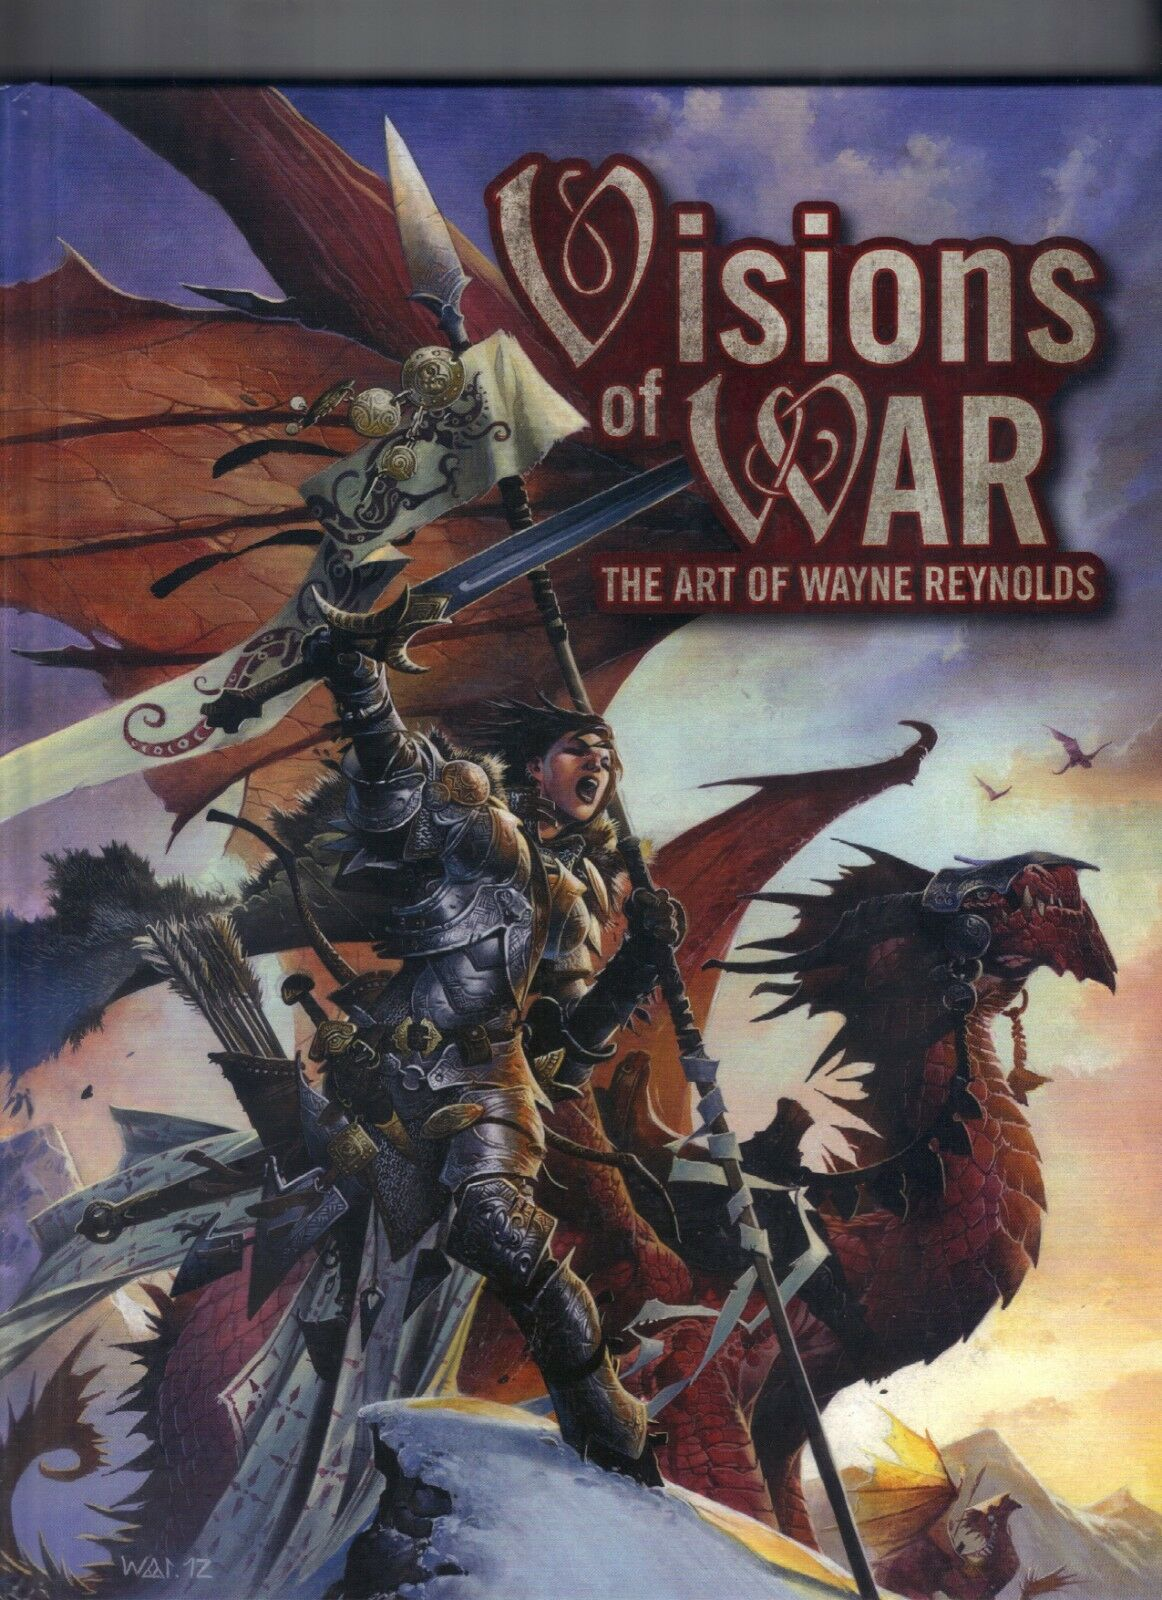 Visions of WAR The Art of Wayne Reynolds Hardcover Price Includes Delivery in UK